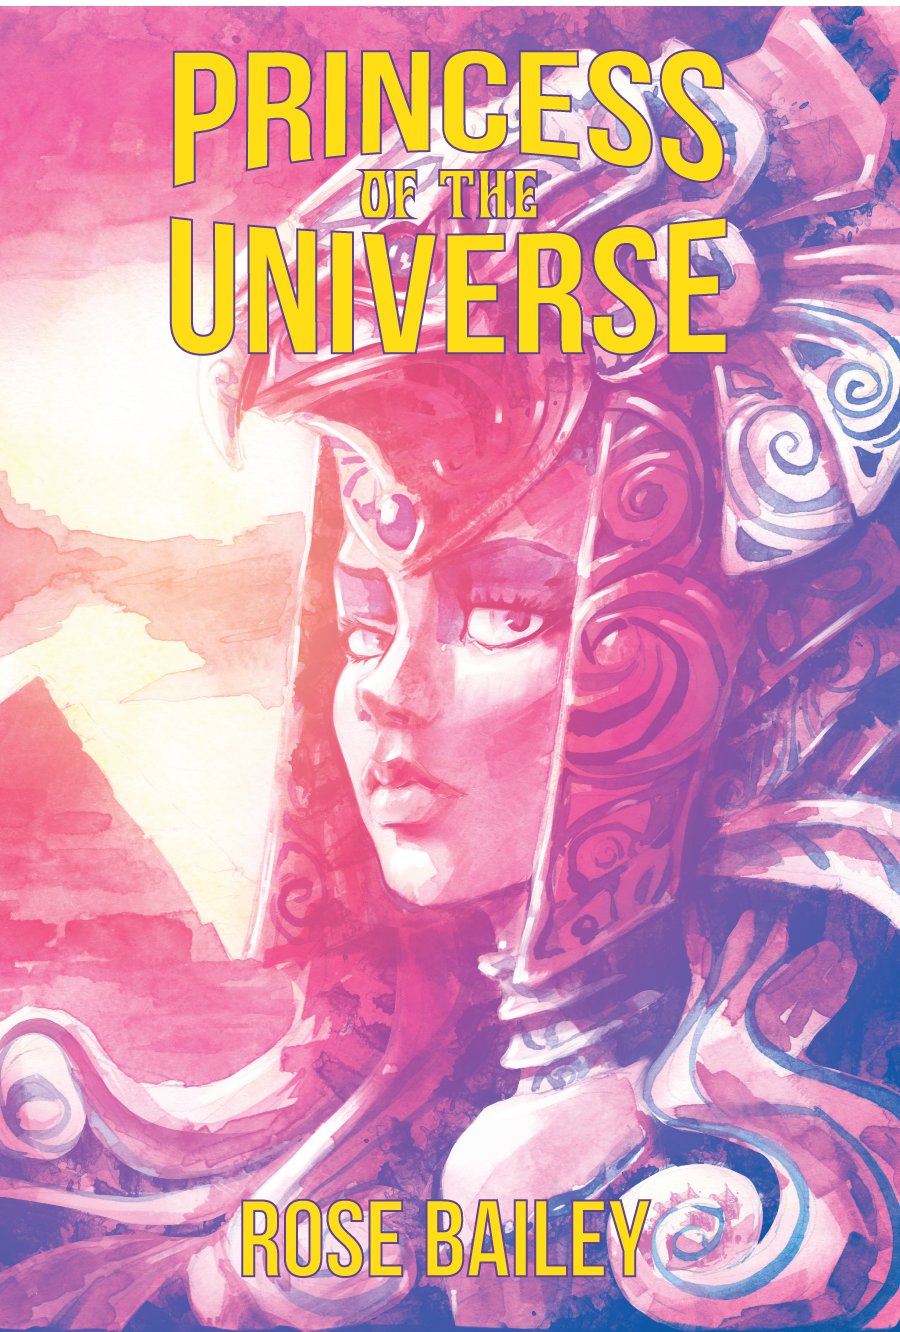 The cover of Princess of the Universe depicting a woman in an egyptian inspired headdress with a pyramid in the background.